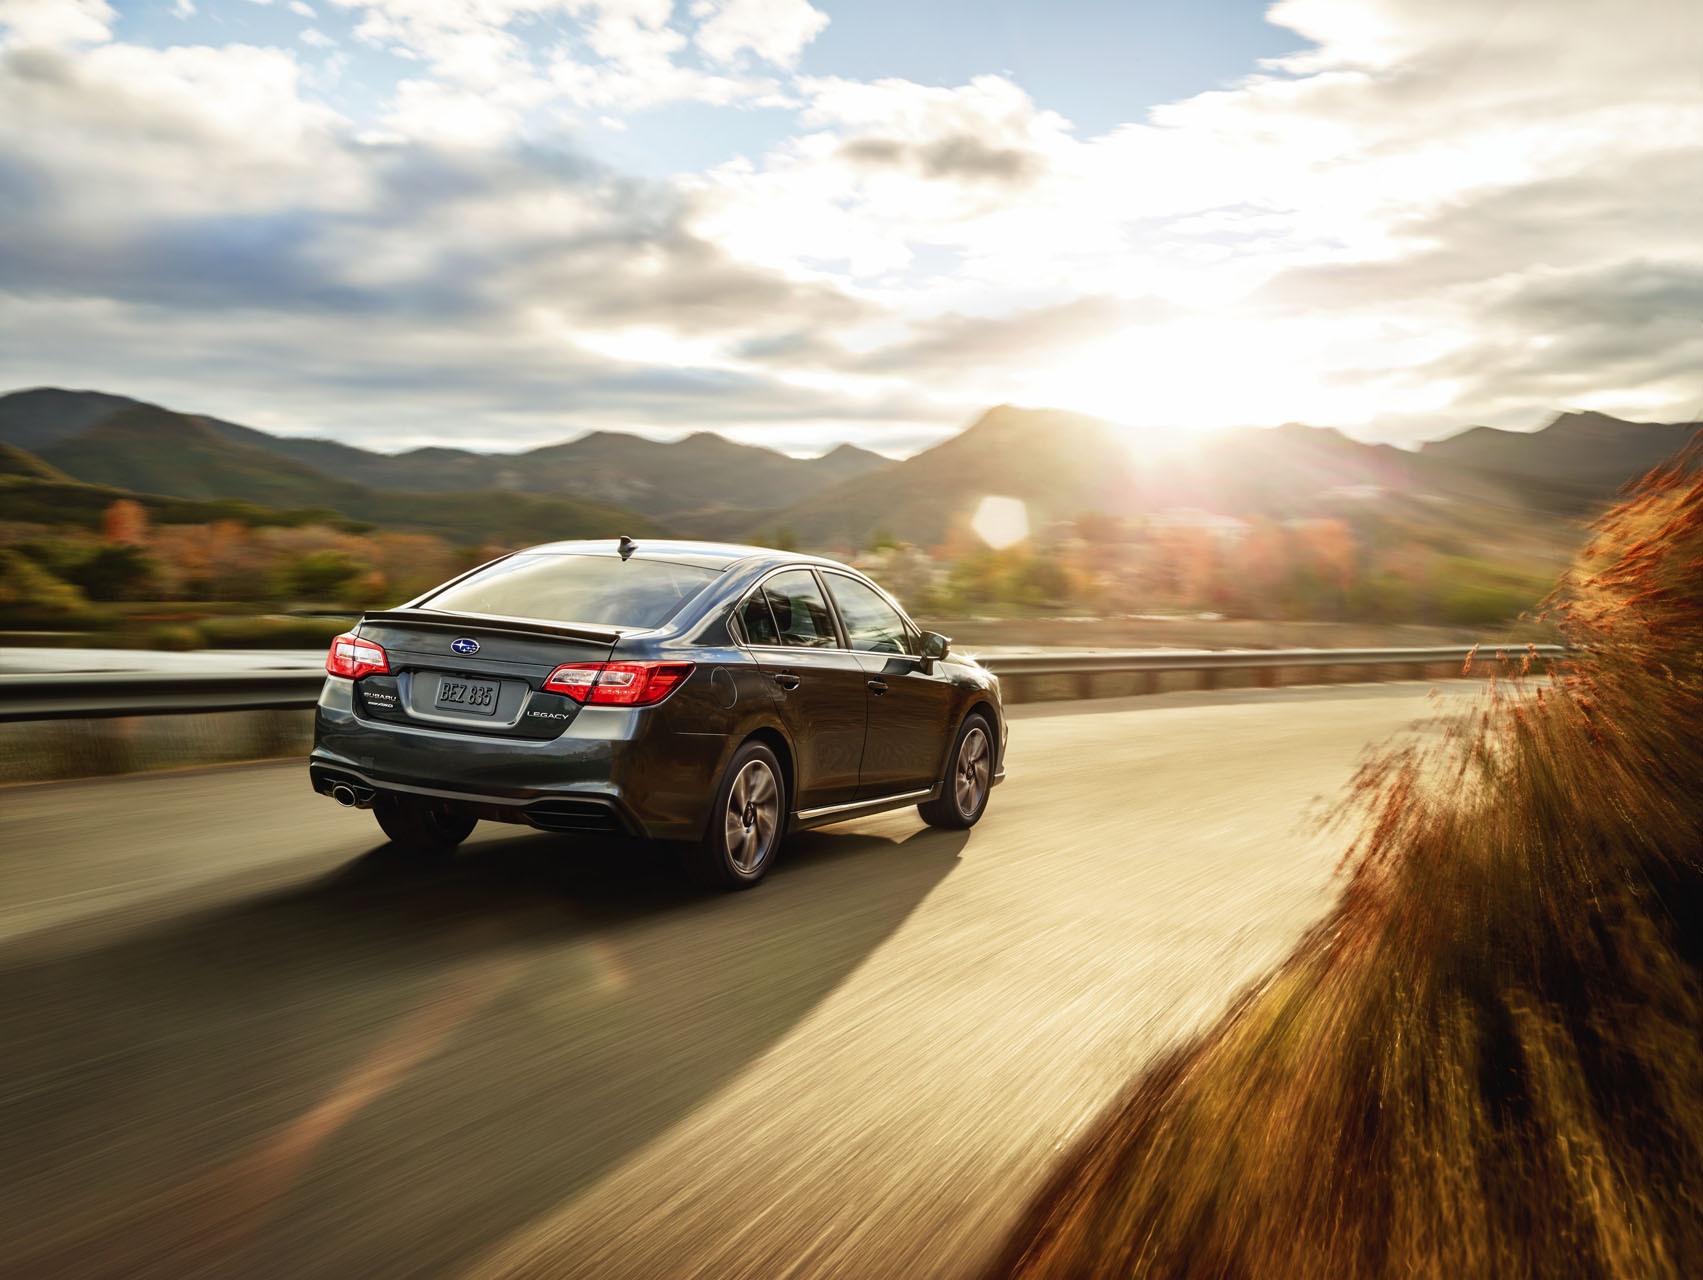 2018 Subaru Legacy Refresh is a Game of Spot the Changes The